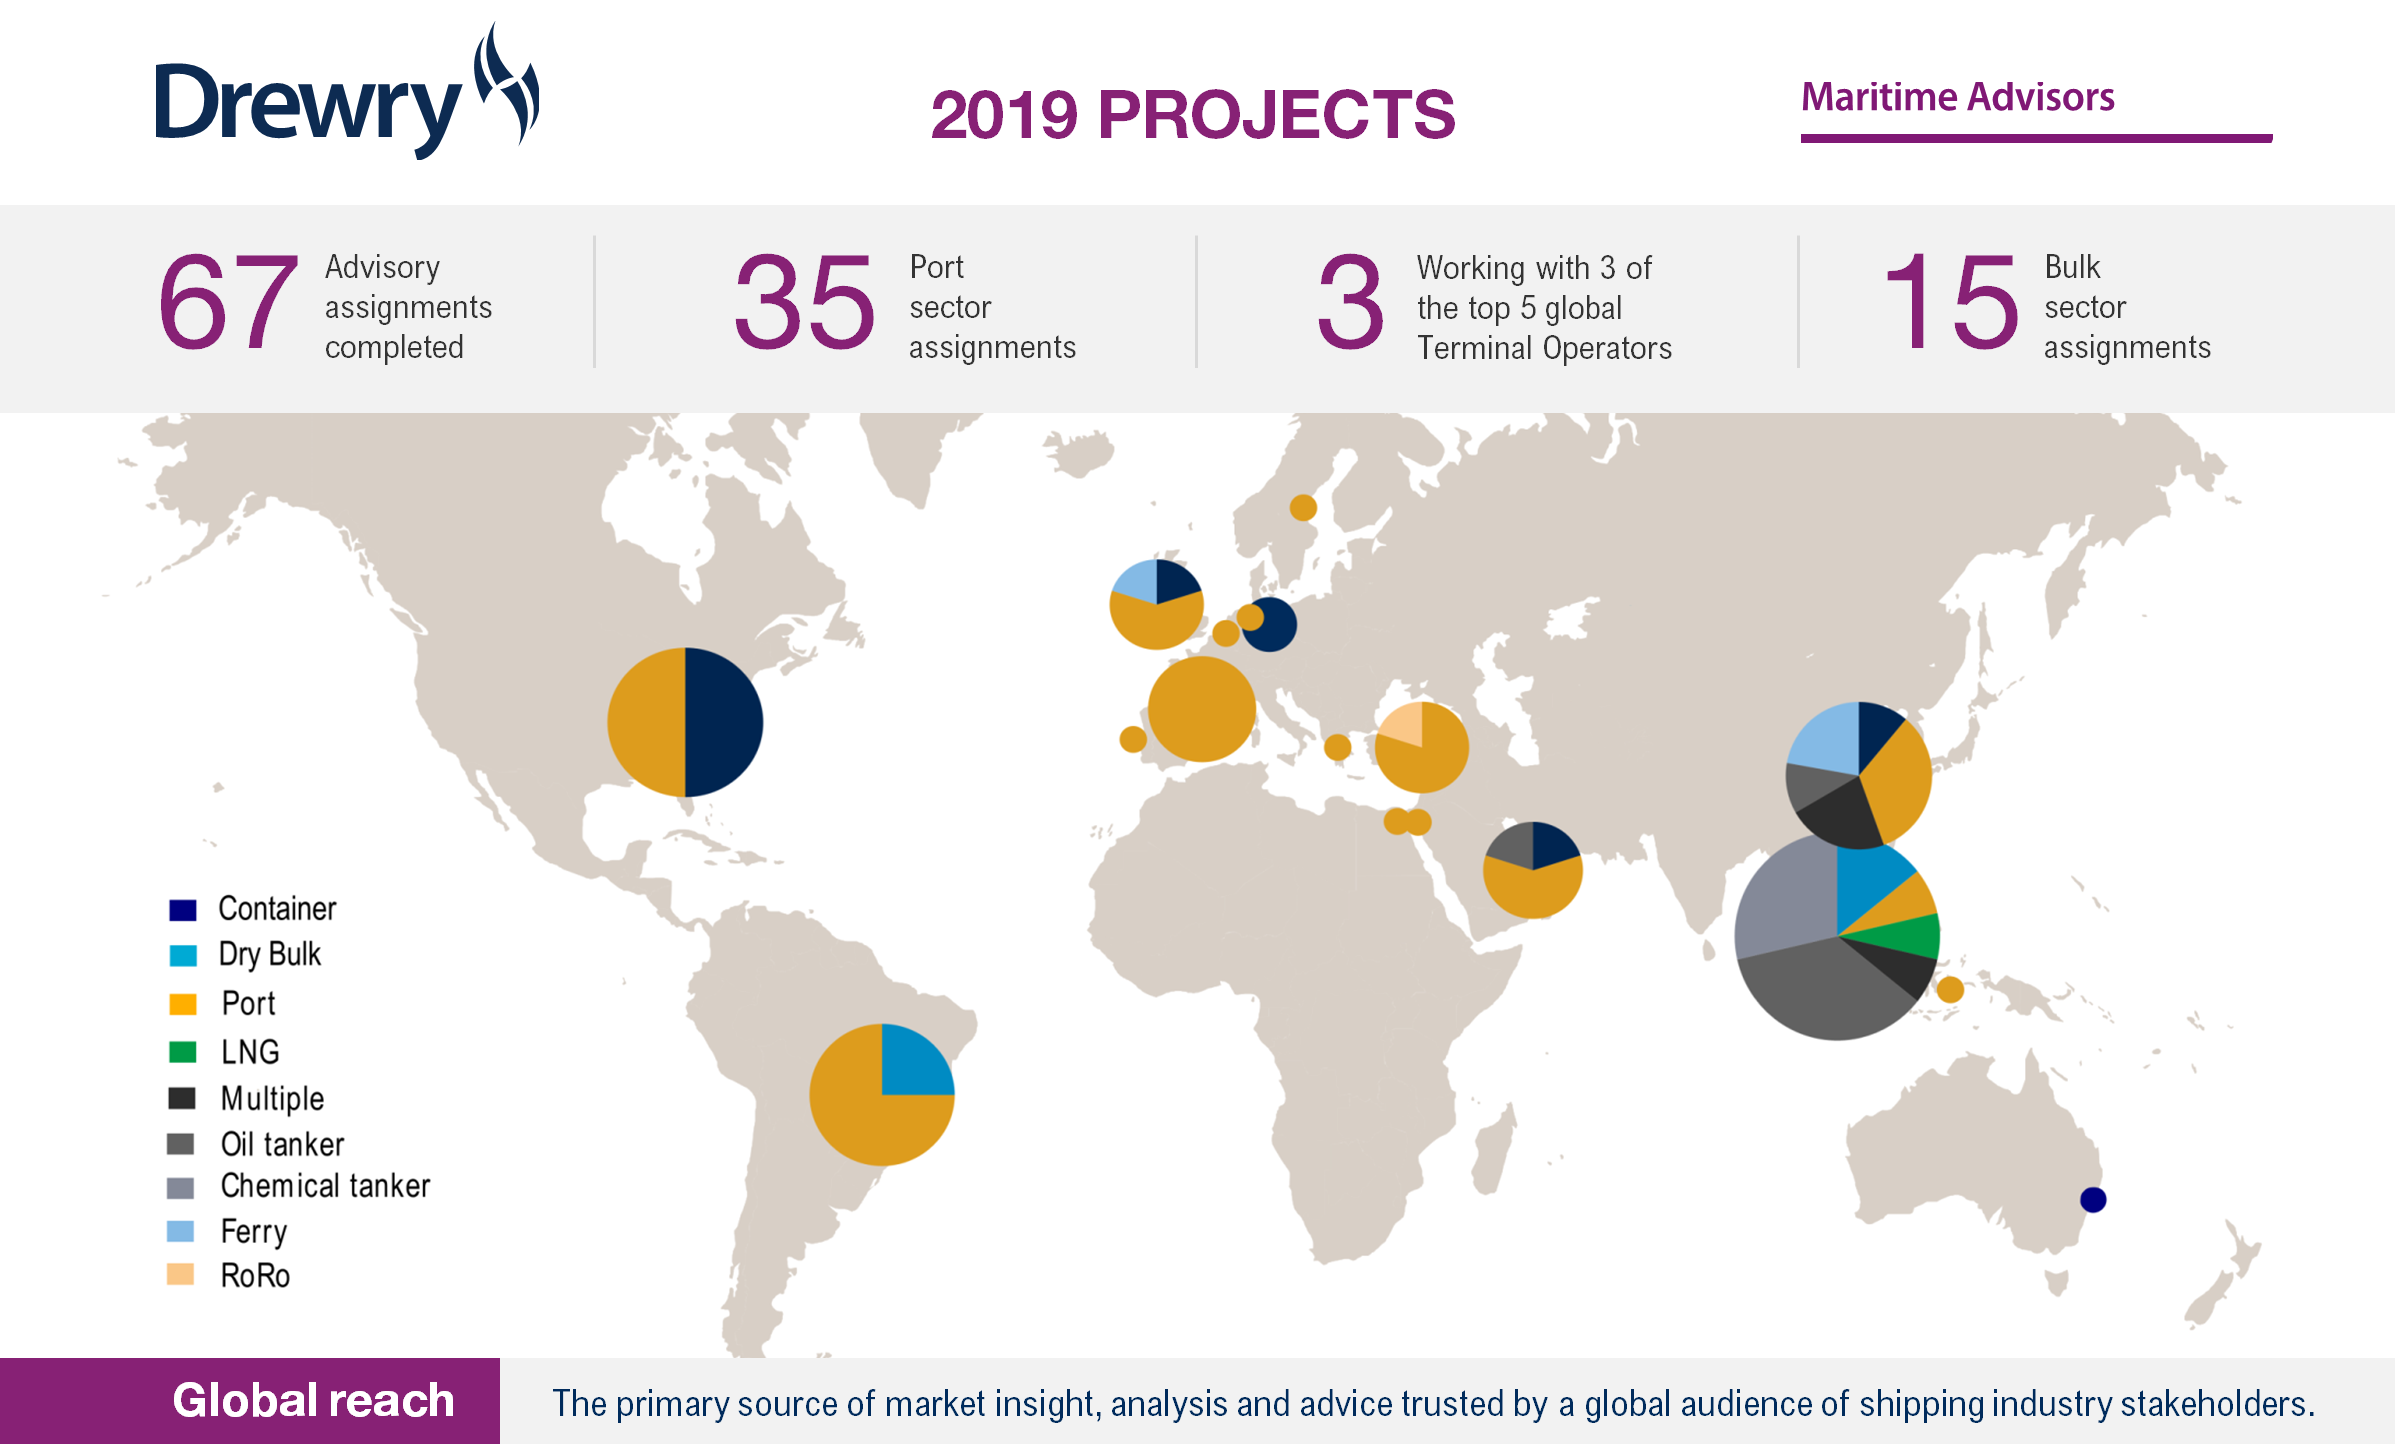 Overview of major project assignments in 2019